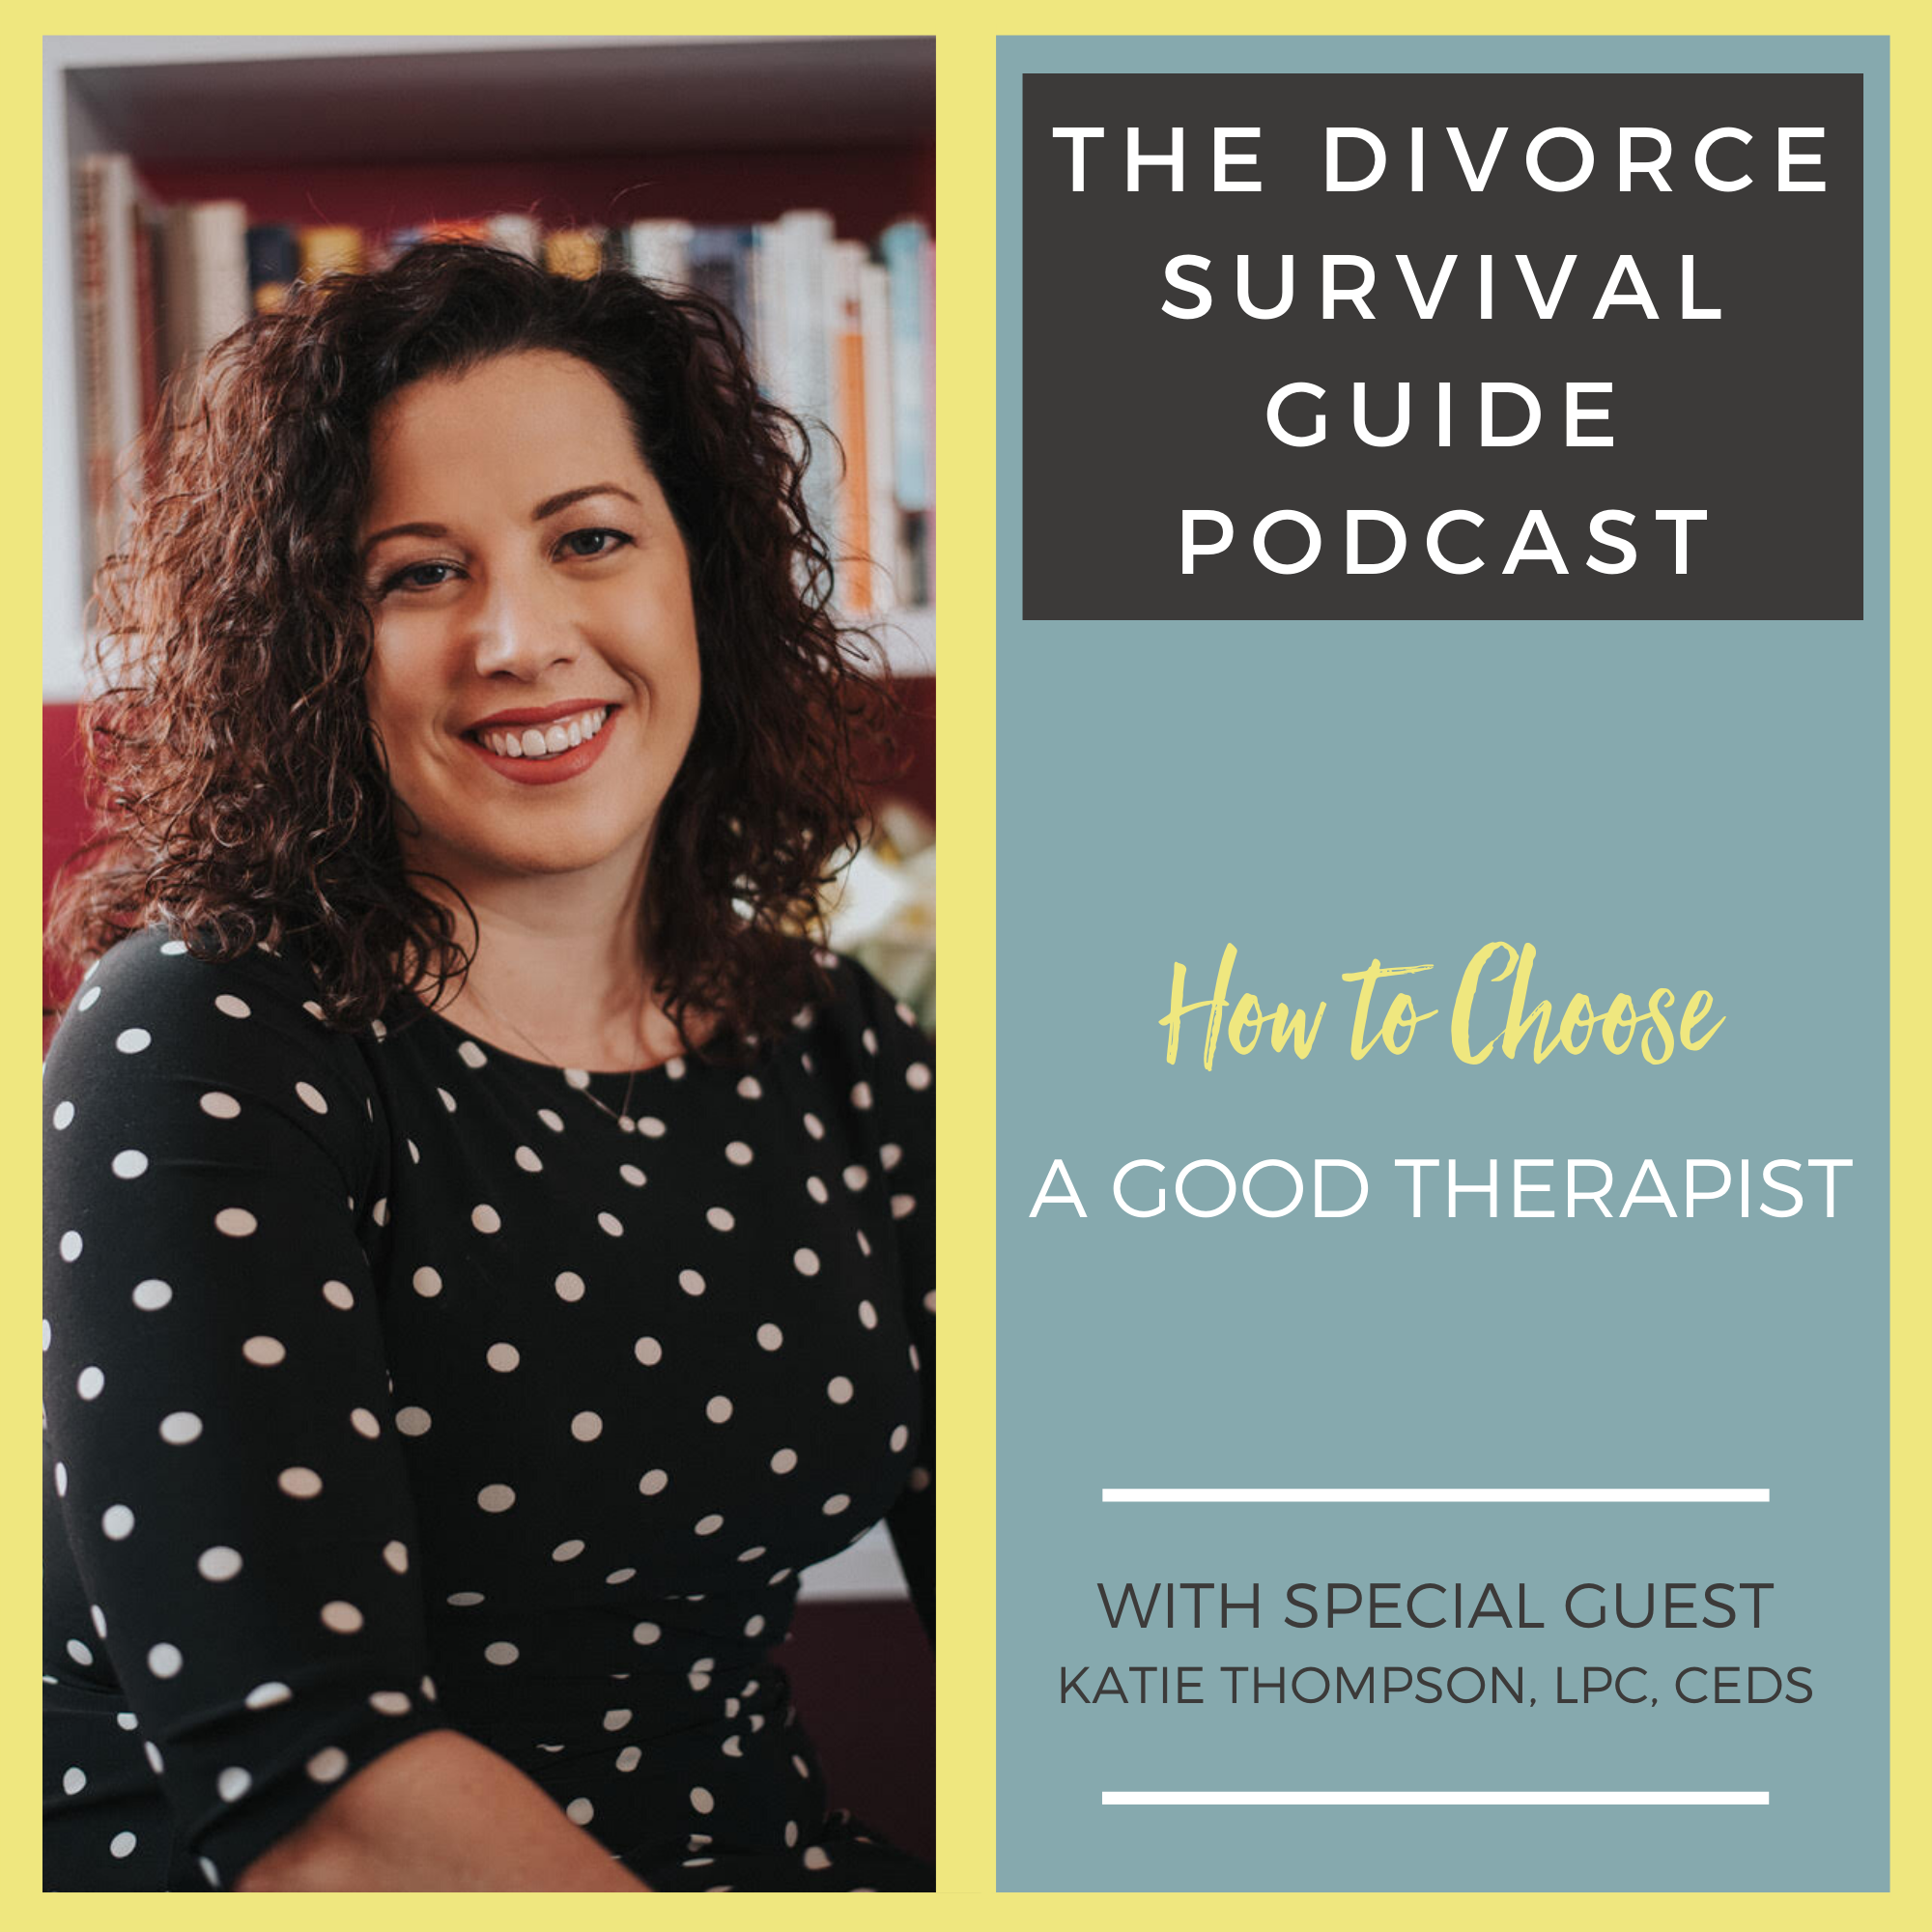 The Divorce Survival Guide Podcast - How to Choose a Good Therapist with Katie Thompson, LPC, CEDS